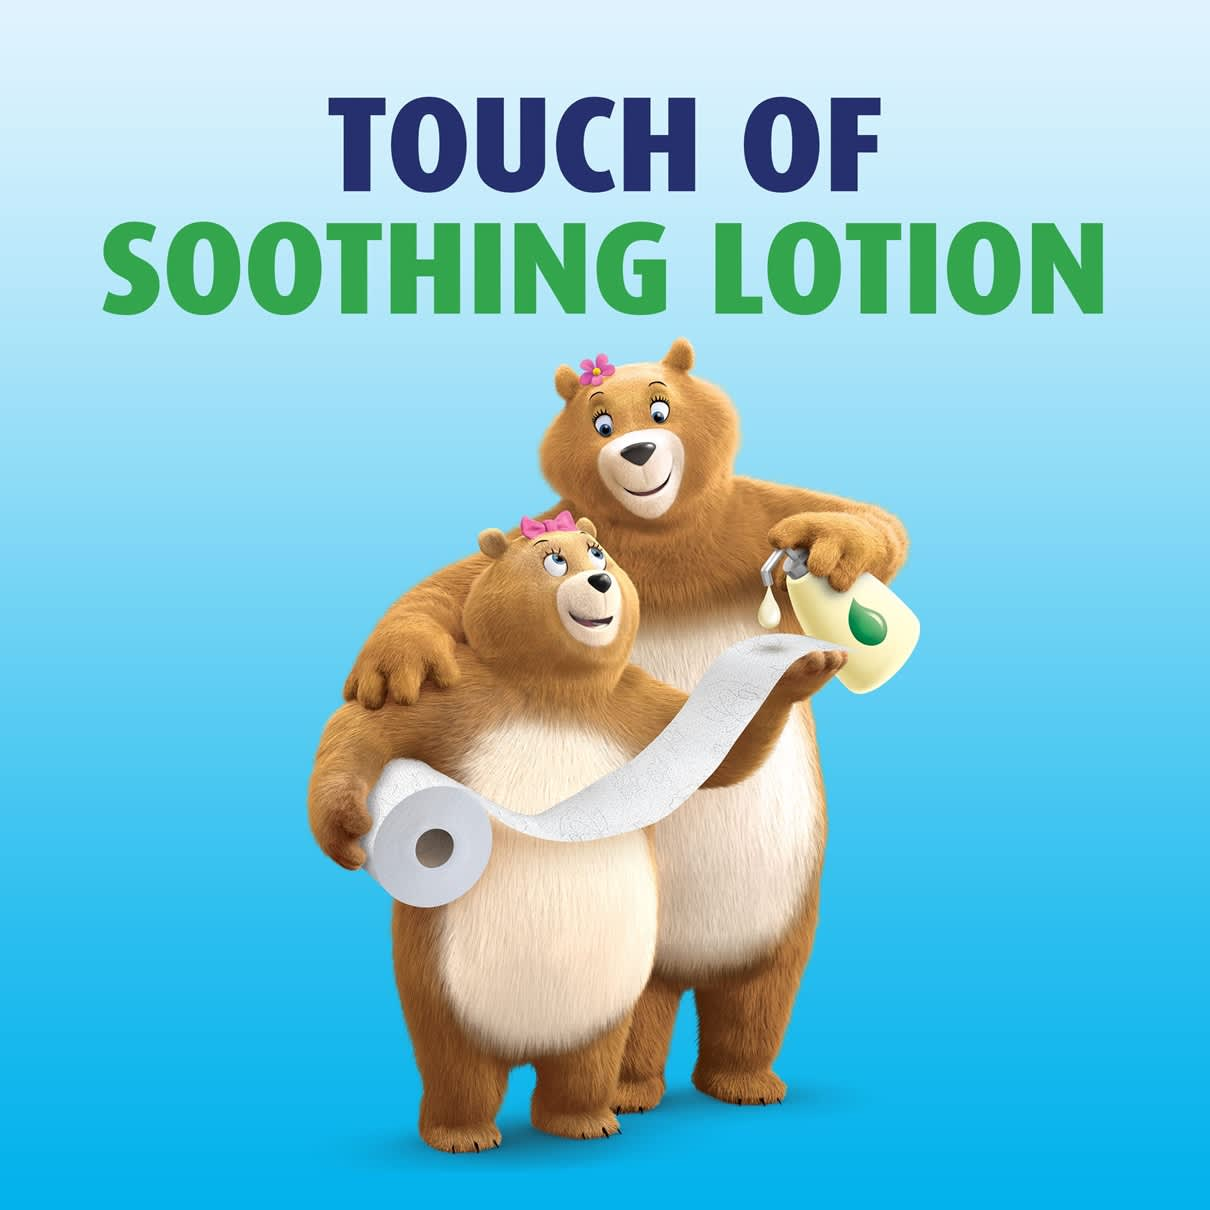 Touch of soothing lotion on every sheet from ultra gentle toilet paper